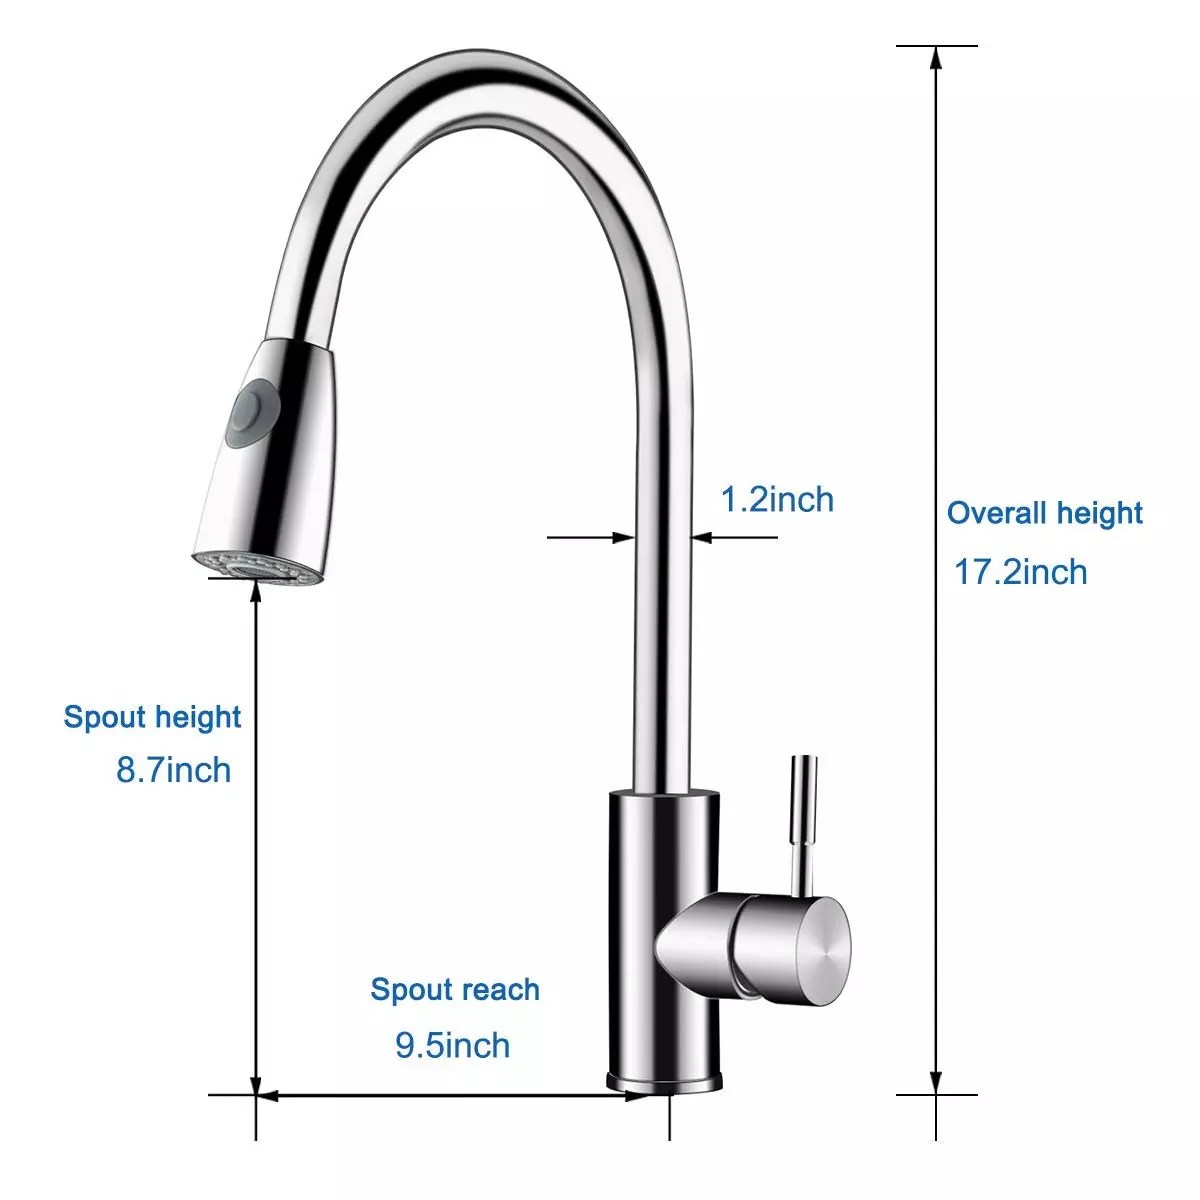 sanfino single handle kitchen faucet stainless steel kitchen sink faucets with pull down sprayer brushed nickel buy stainless steel faucet single